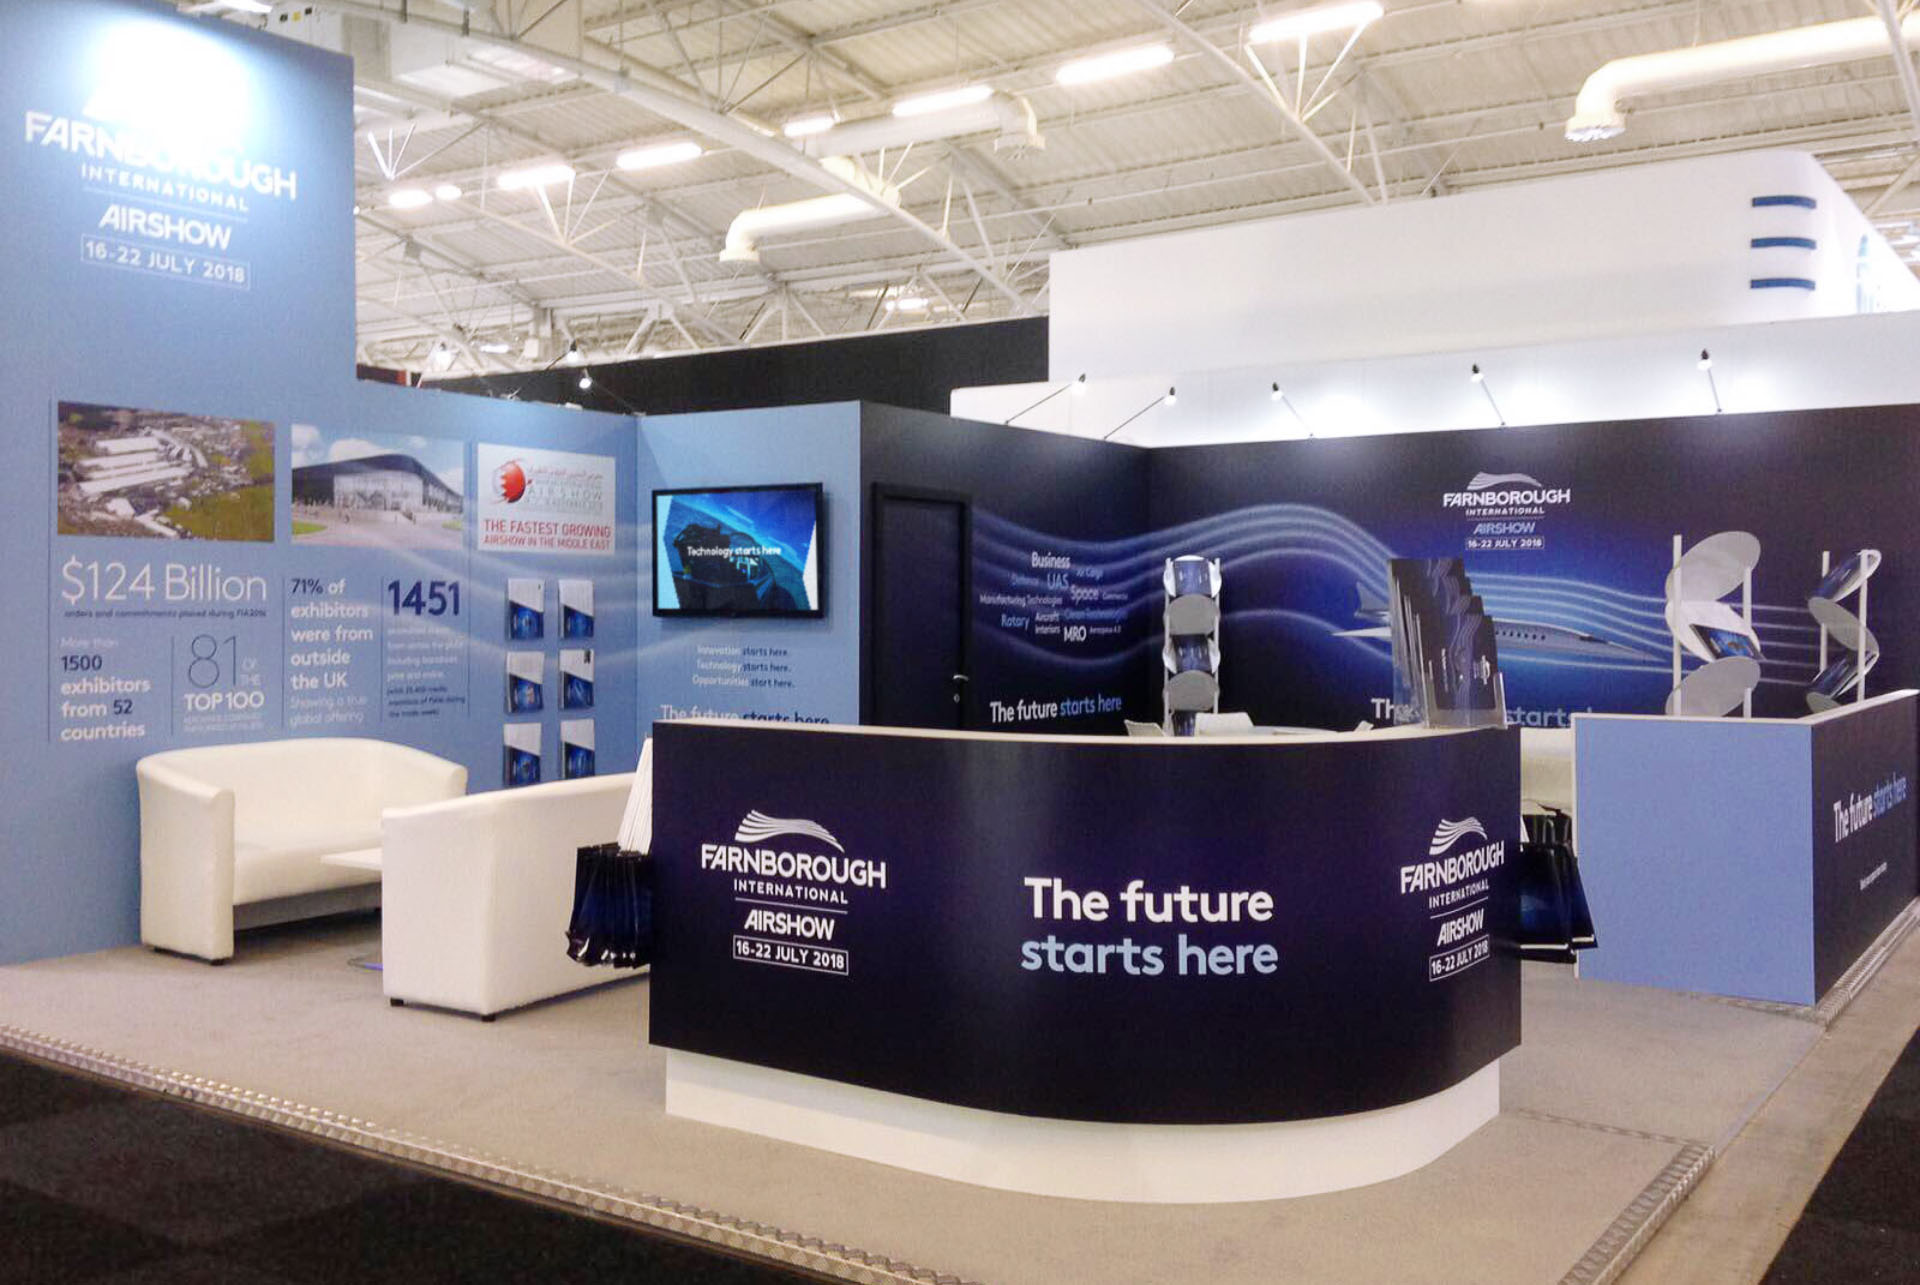 FIA Paris Airshow Exhibition Stand Design by Ouno Creative, Farnborough.